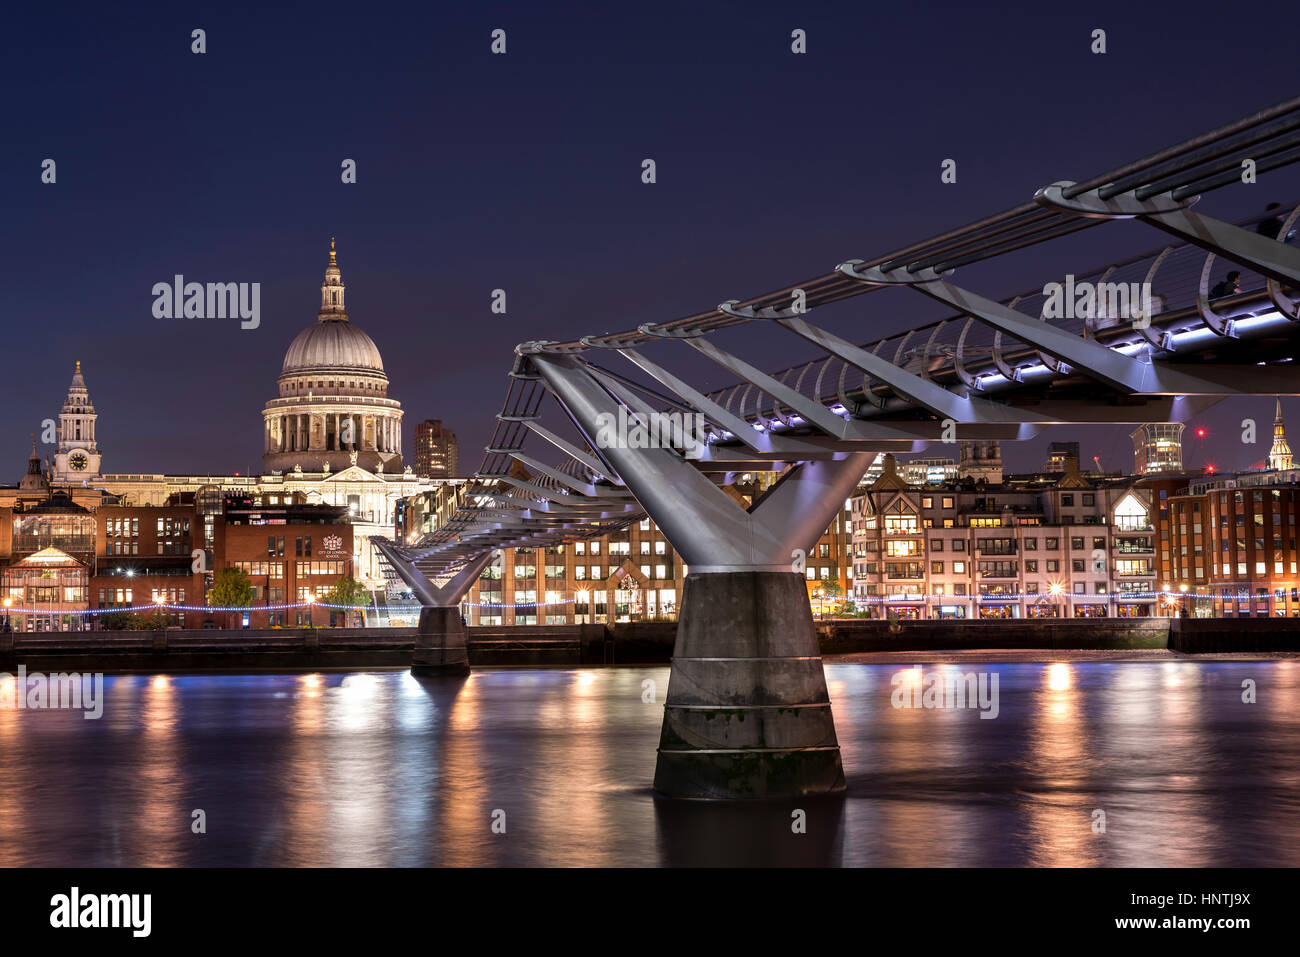 Night time view of the Millennium Bridge and River Thames, London, UK, with St Paul's Cathedral, lit up on the opposite Stock Photo